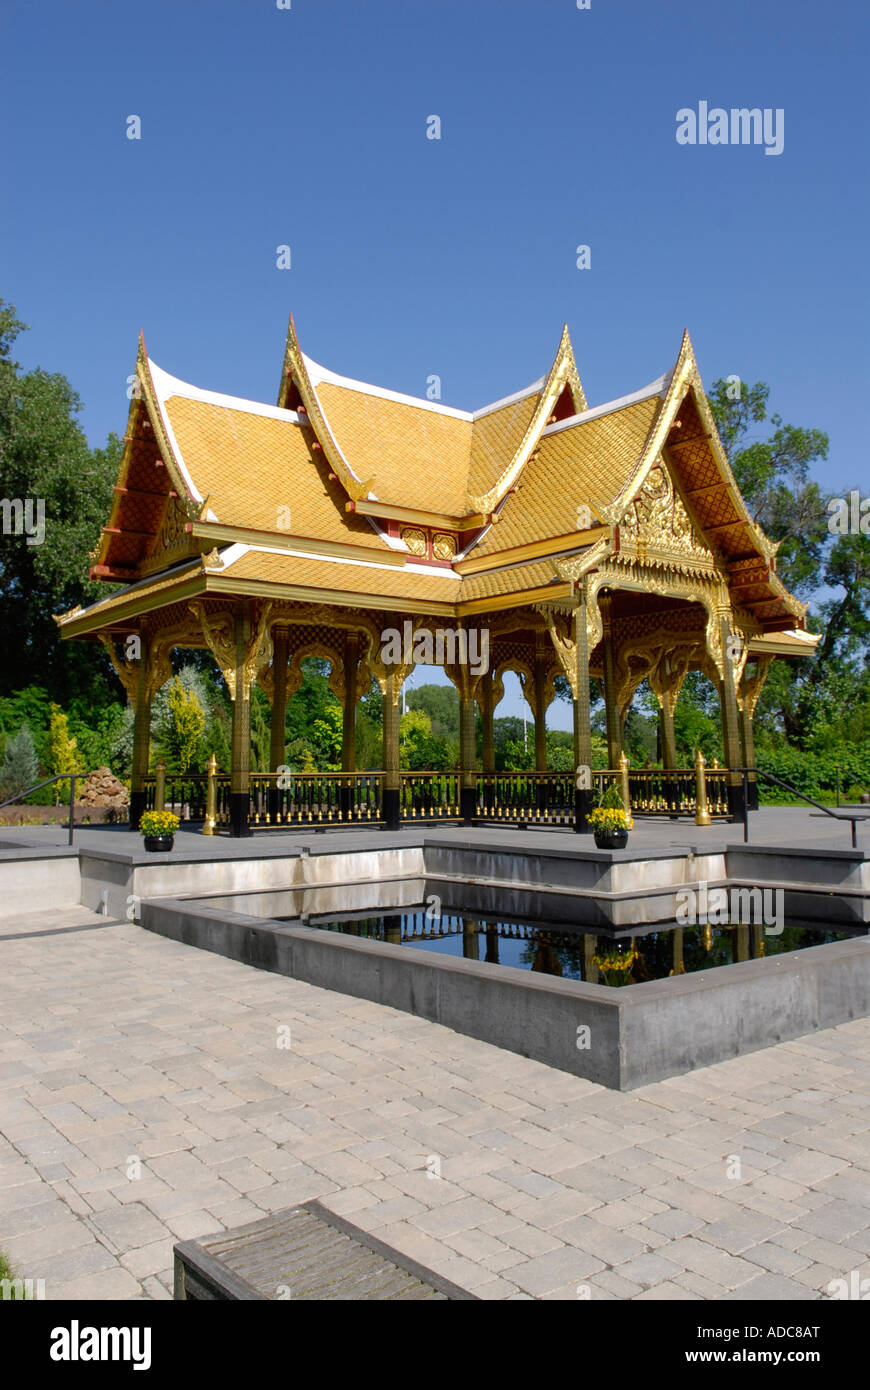 Thai Pavilion Pagoda And Garden At Olbrich Botanical Gardens In Stock Photo Royalty Free Image